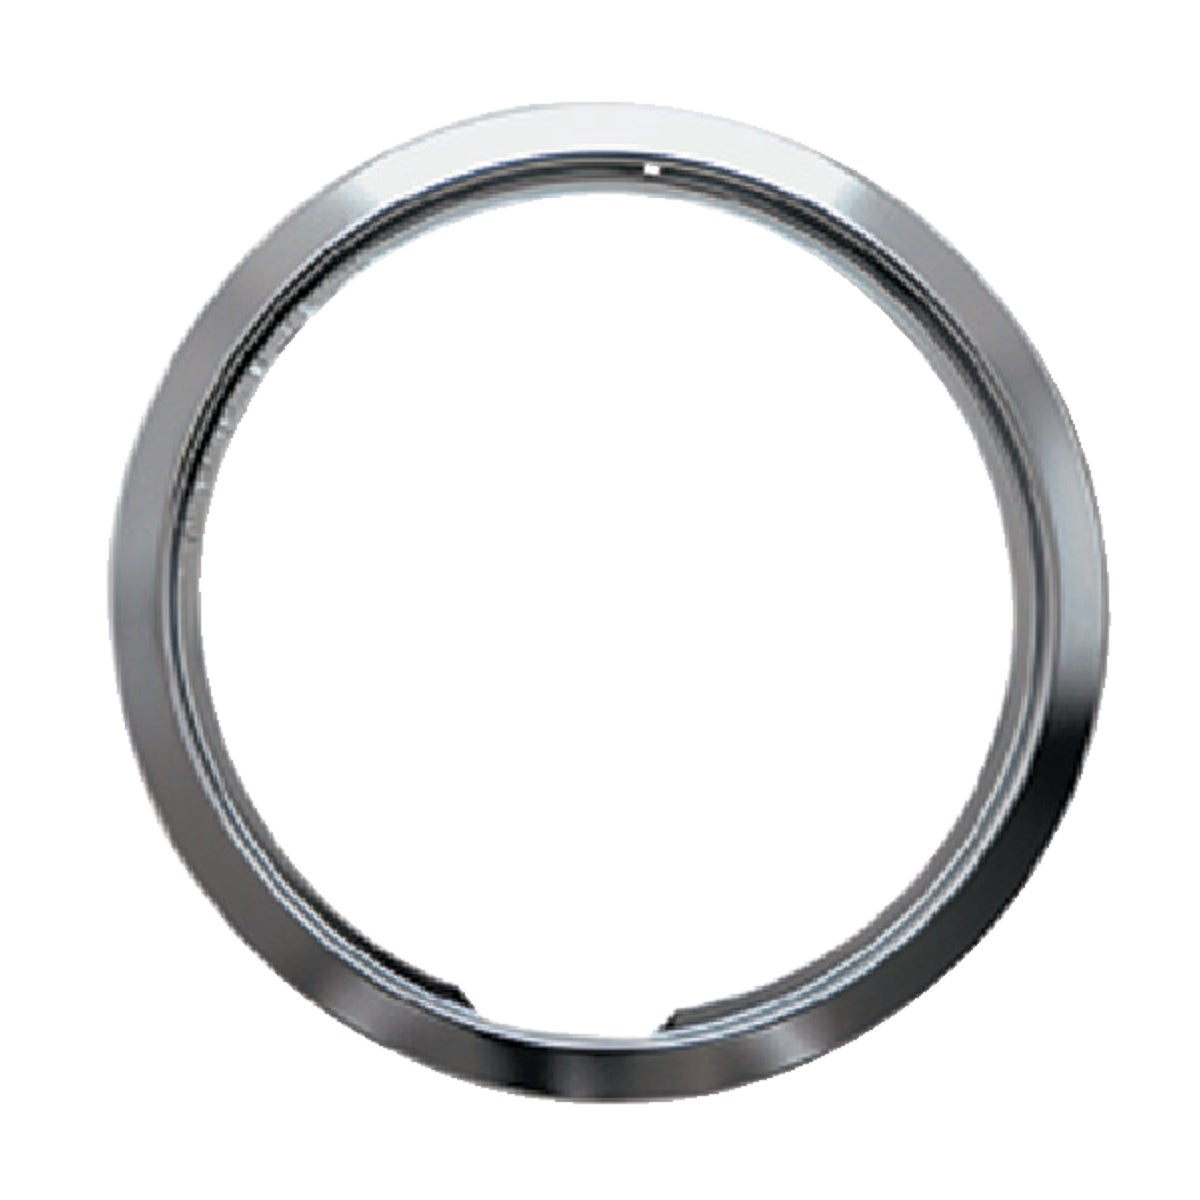 "6"" CHROME TRIM RING - R6-U by Range Kleen Mfg Inc"